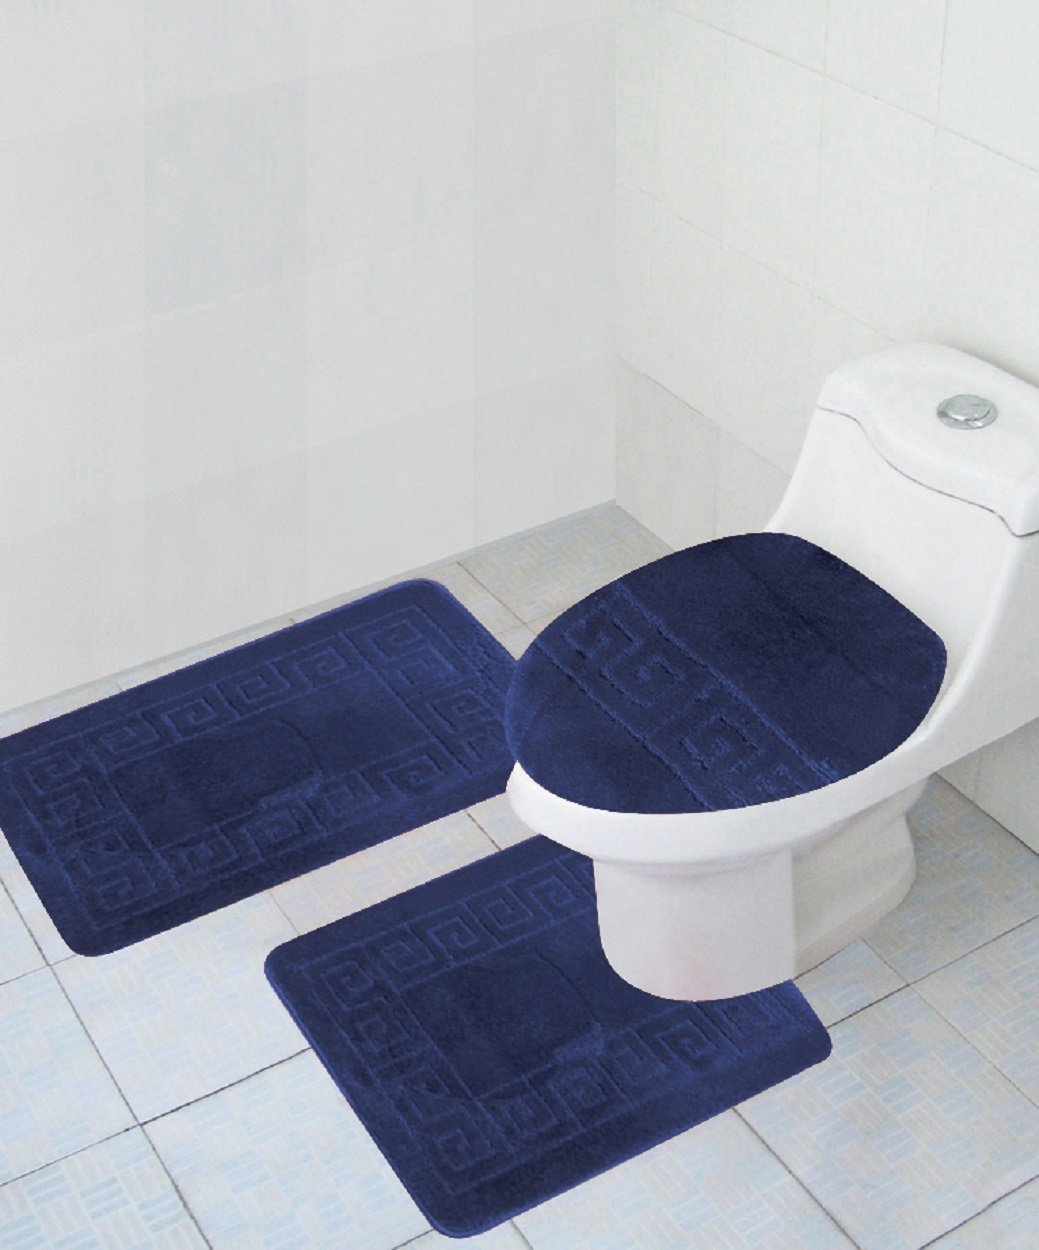 Shop Amazoncom Bath Rugs - Navy bath runner for bathroom decorating ideas